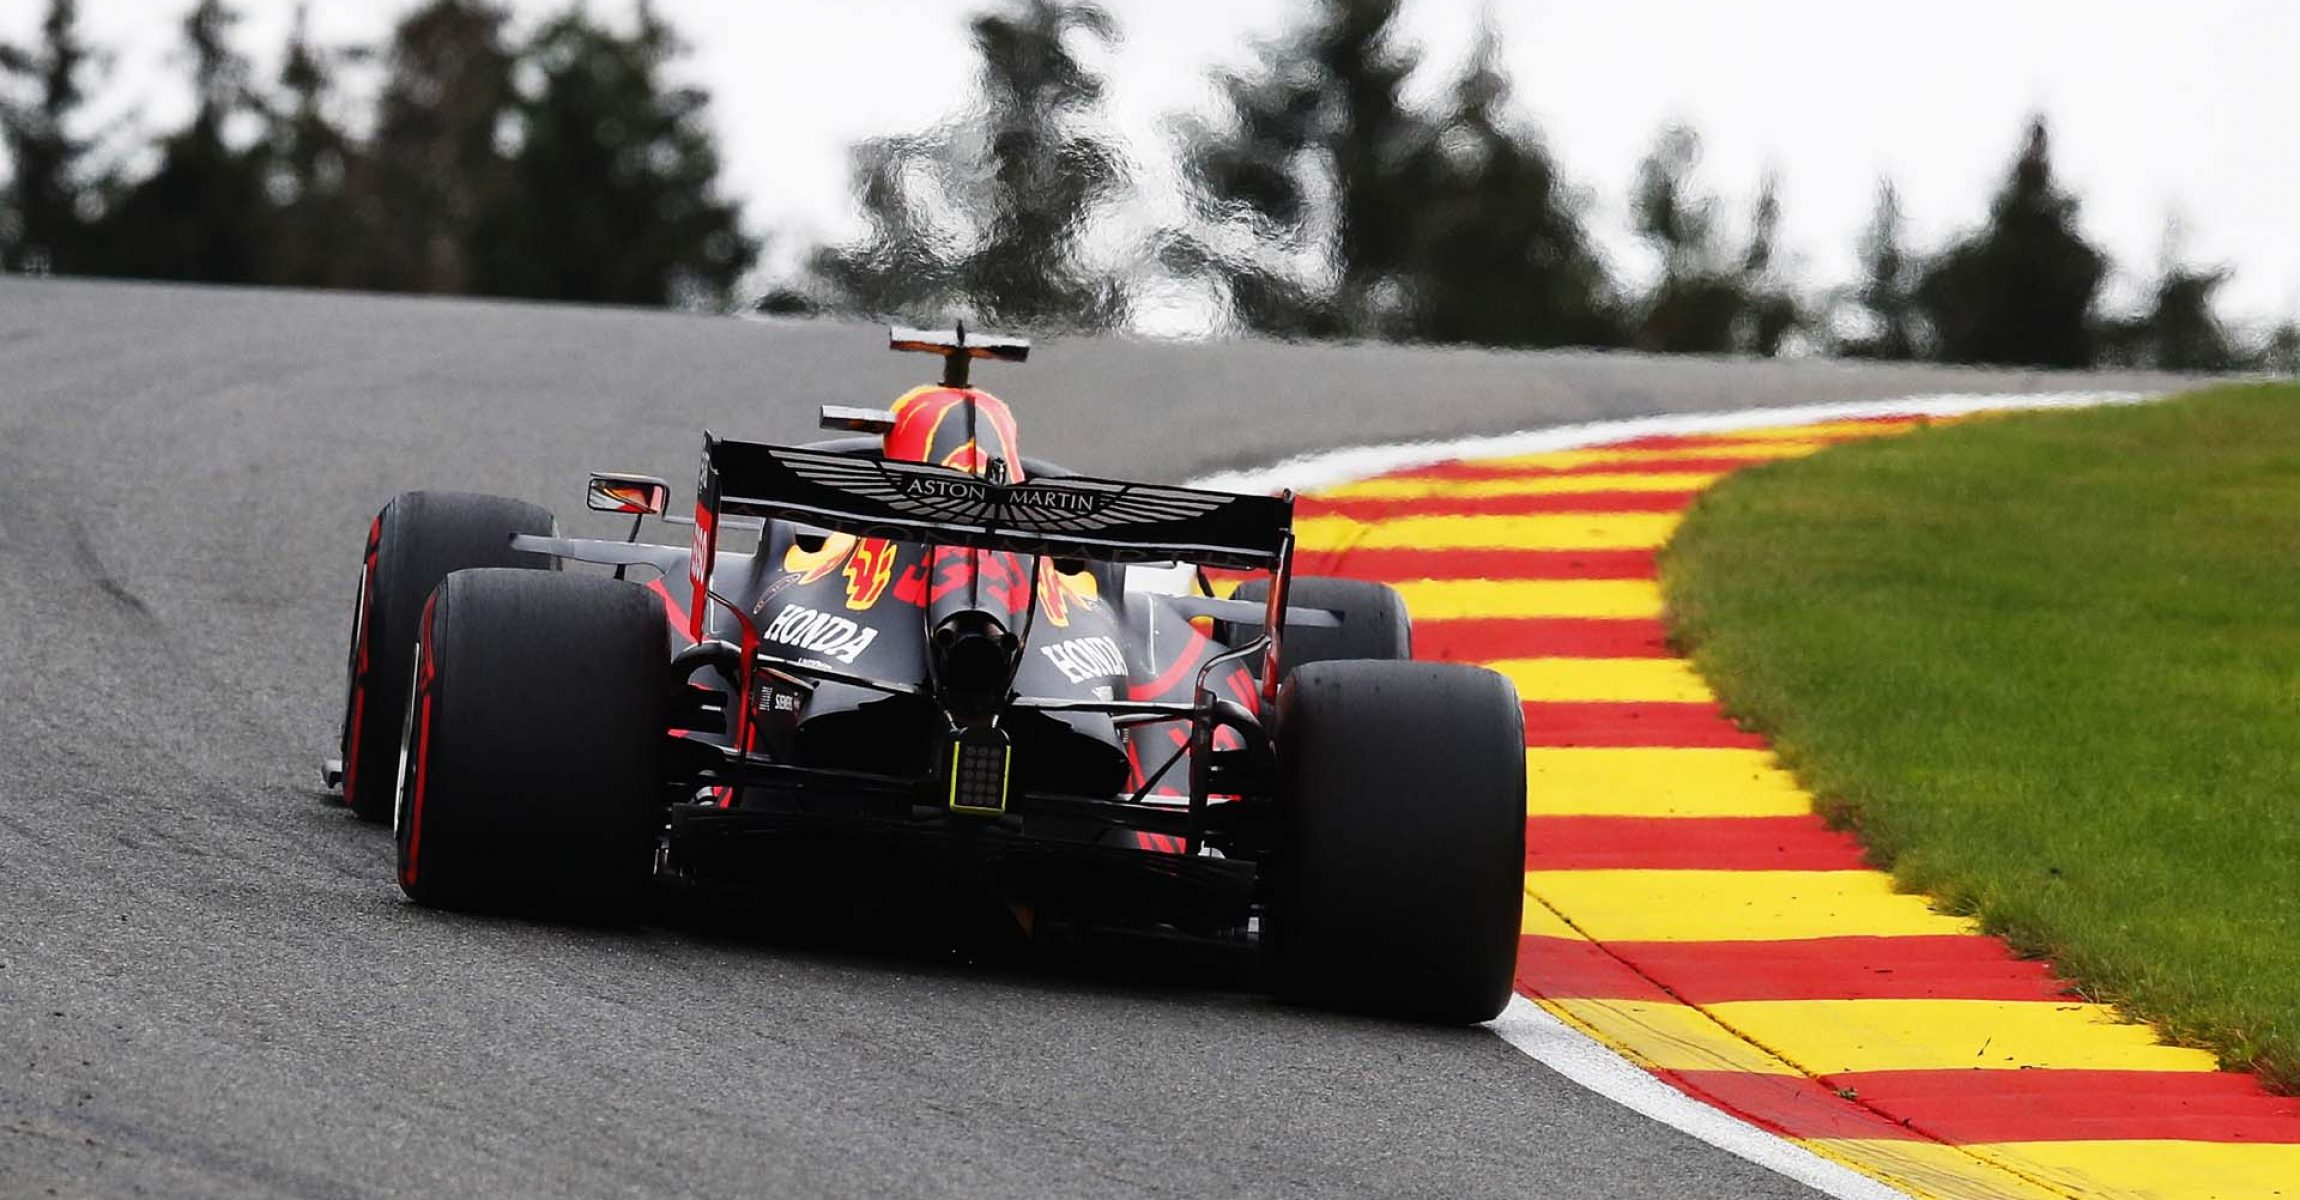 SPA, BELGIUM - AUGUST 28: Max Verstappen of the Netherlands driving the (33) Aston Martin Red Bull Racing RB16 on track during practice for the F1 Grand Prix of Belgium at Circuit de Spa-Francorchamps on August 28, 2020 in Spa, Belgium. (Photo by Francois Lenoir/Pool via Getty Images)